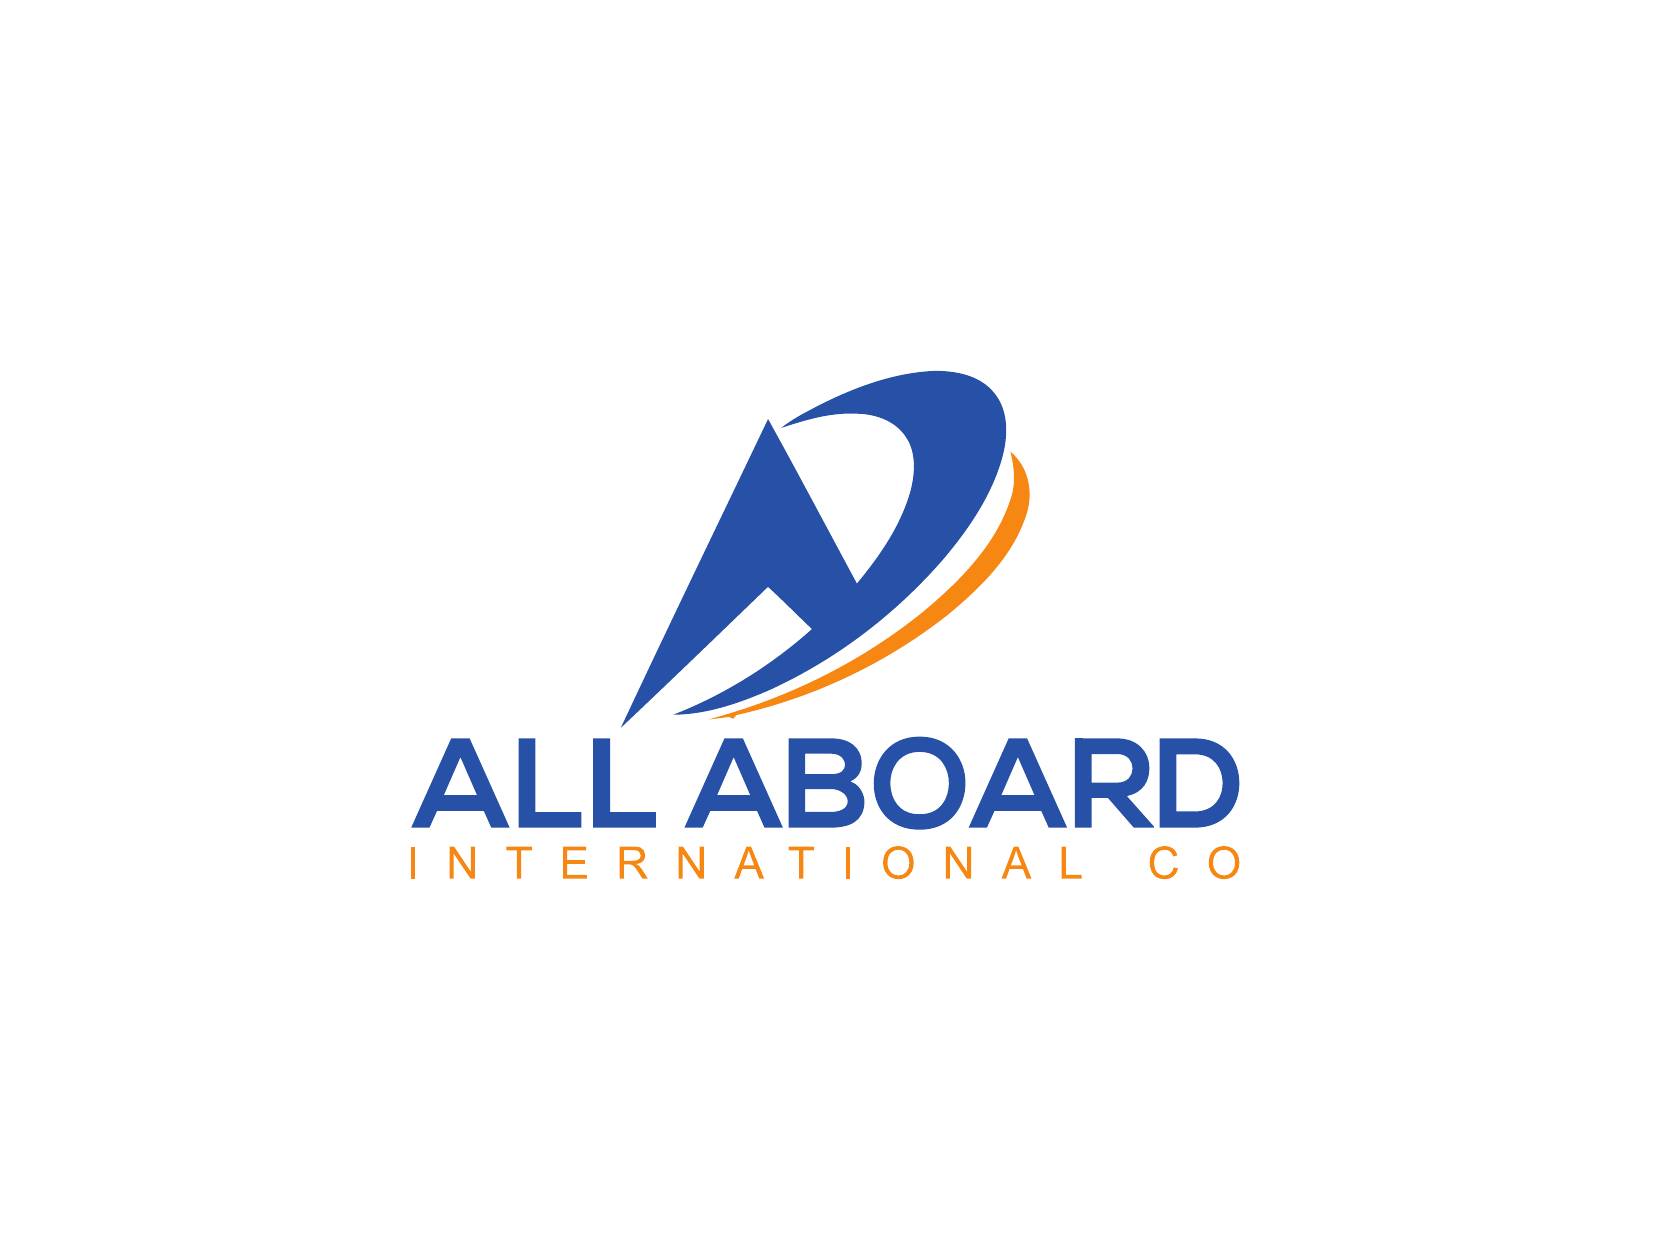 Best of Doral™ Travel and Freight Services presents All Aboard International Co.